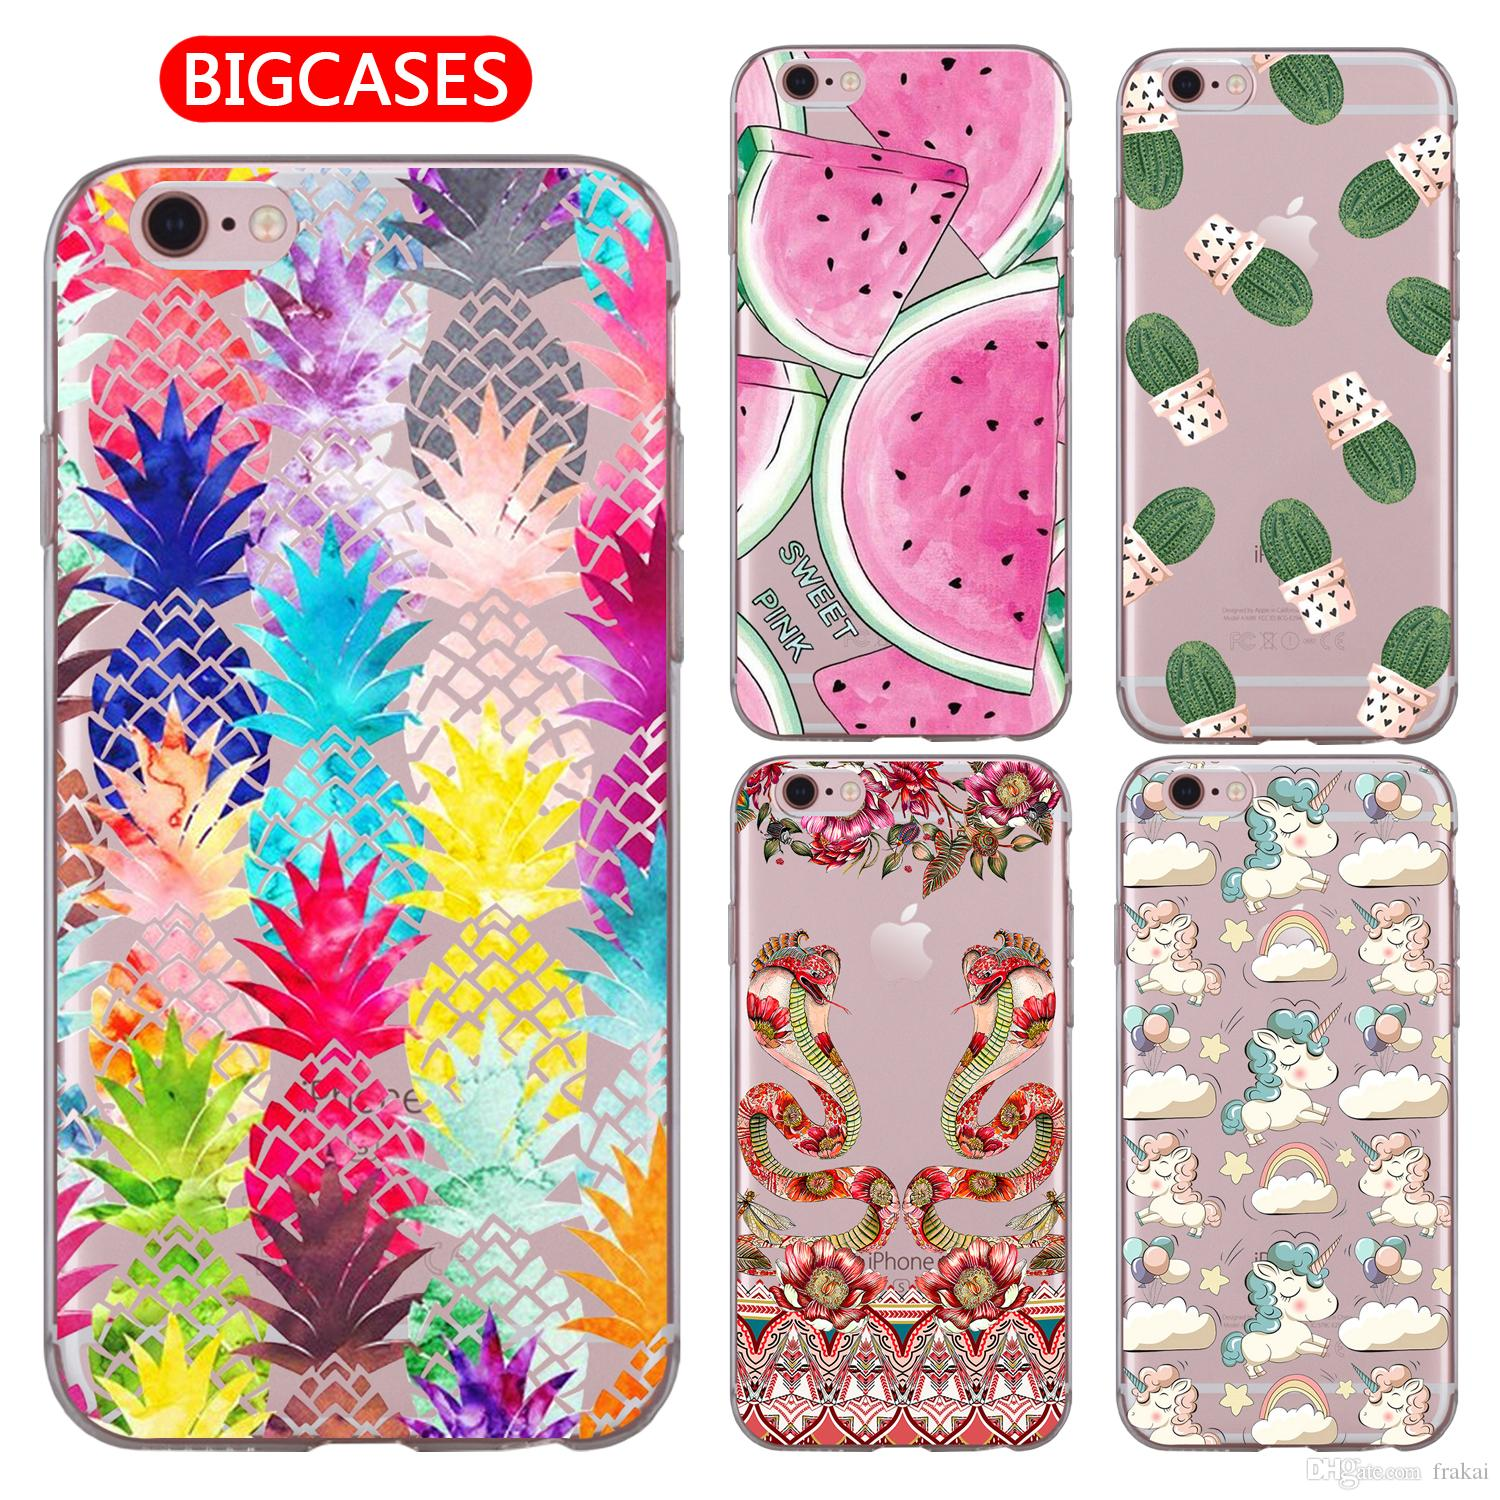 For Iphone Xs Max Xr X 8 7 6 6s Plus 5 5s Se Case Soft Tpu Silicone Cute Color Pineapple Phone Cover Phone Covers Make Your Own Phone Case From Frakai